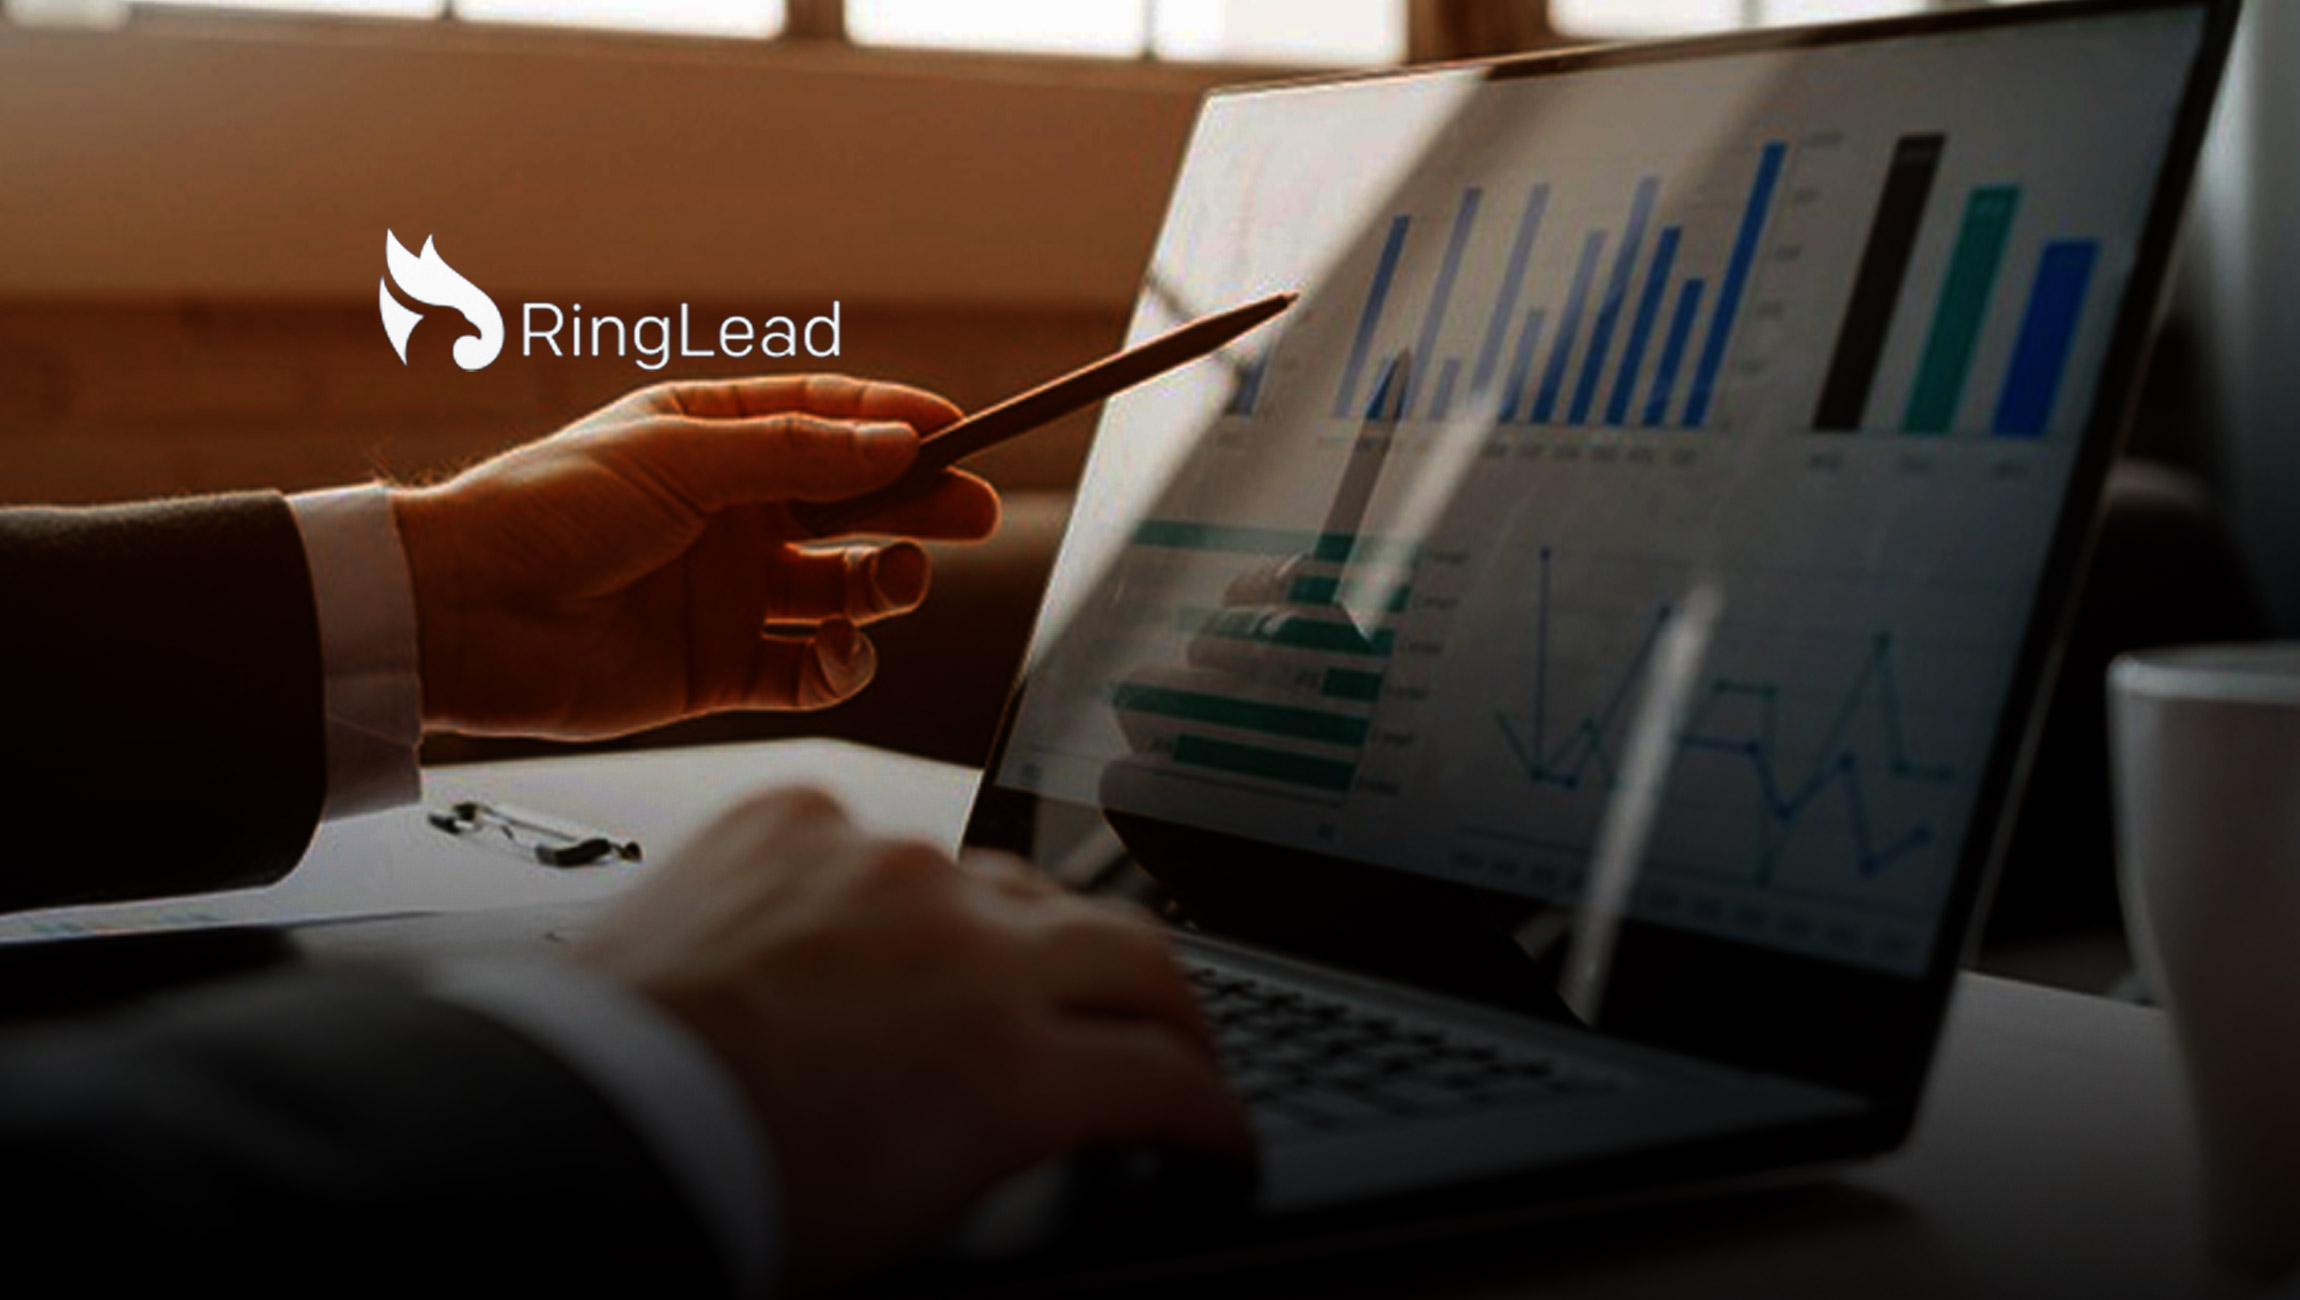 RingLead is Poised To Become A Leader in The Open Data Marketplace By 2021